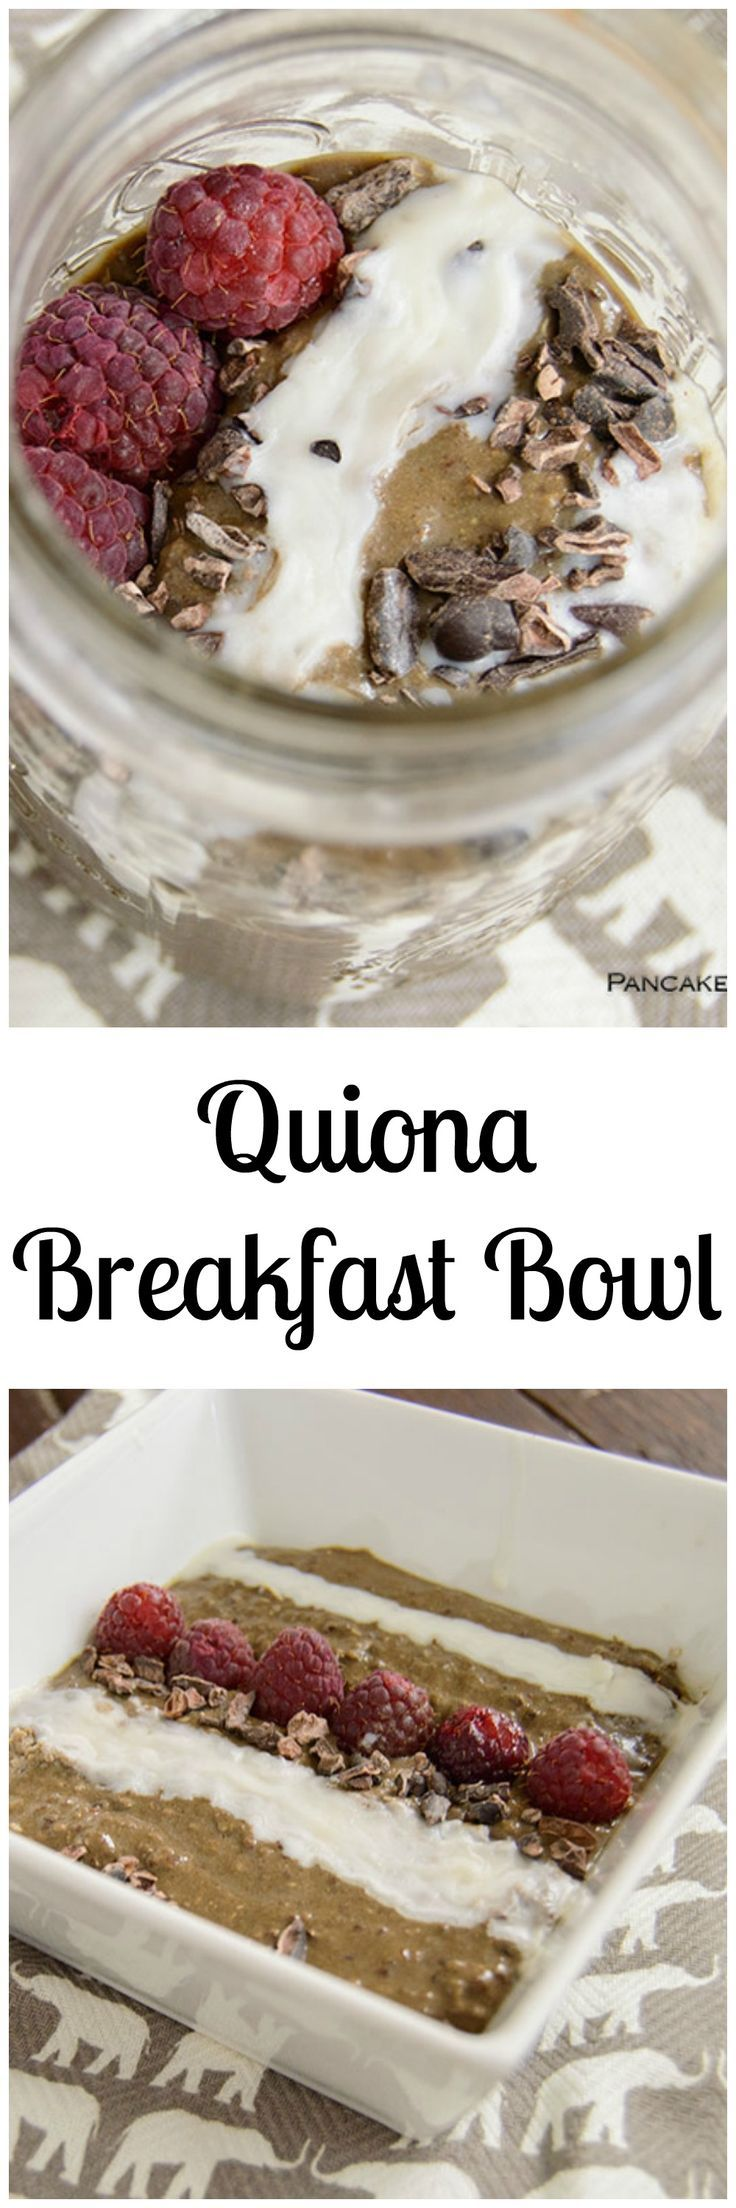 Healthy Quinoa Breakfast Bowl - ready for you in the morning - perfect way to start your day. Gluten free, high protein breakfast is perfect for on the go mornings.